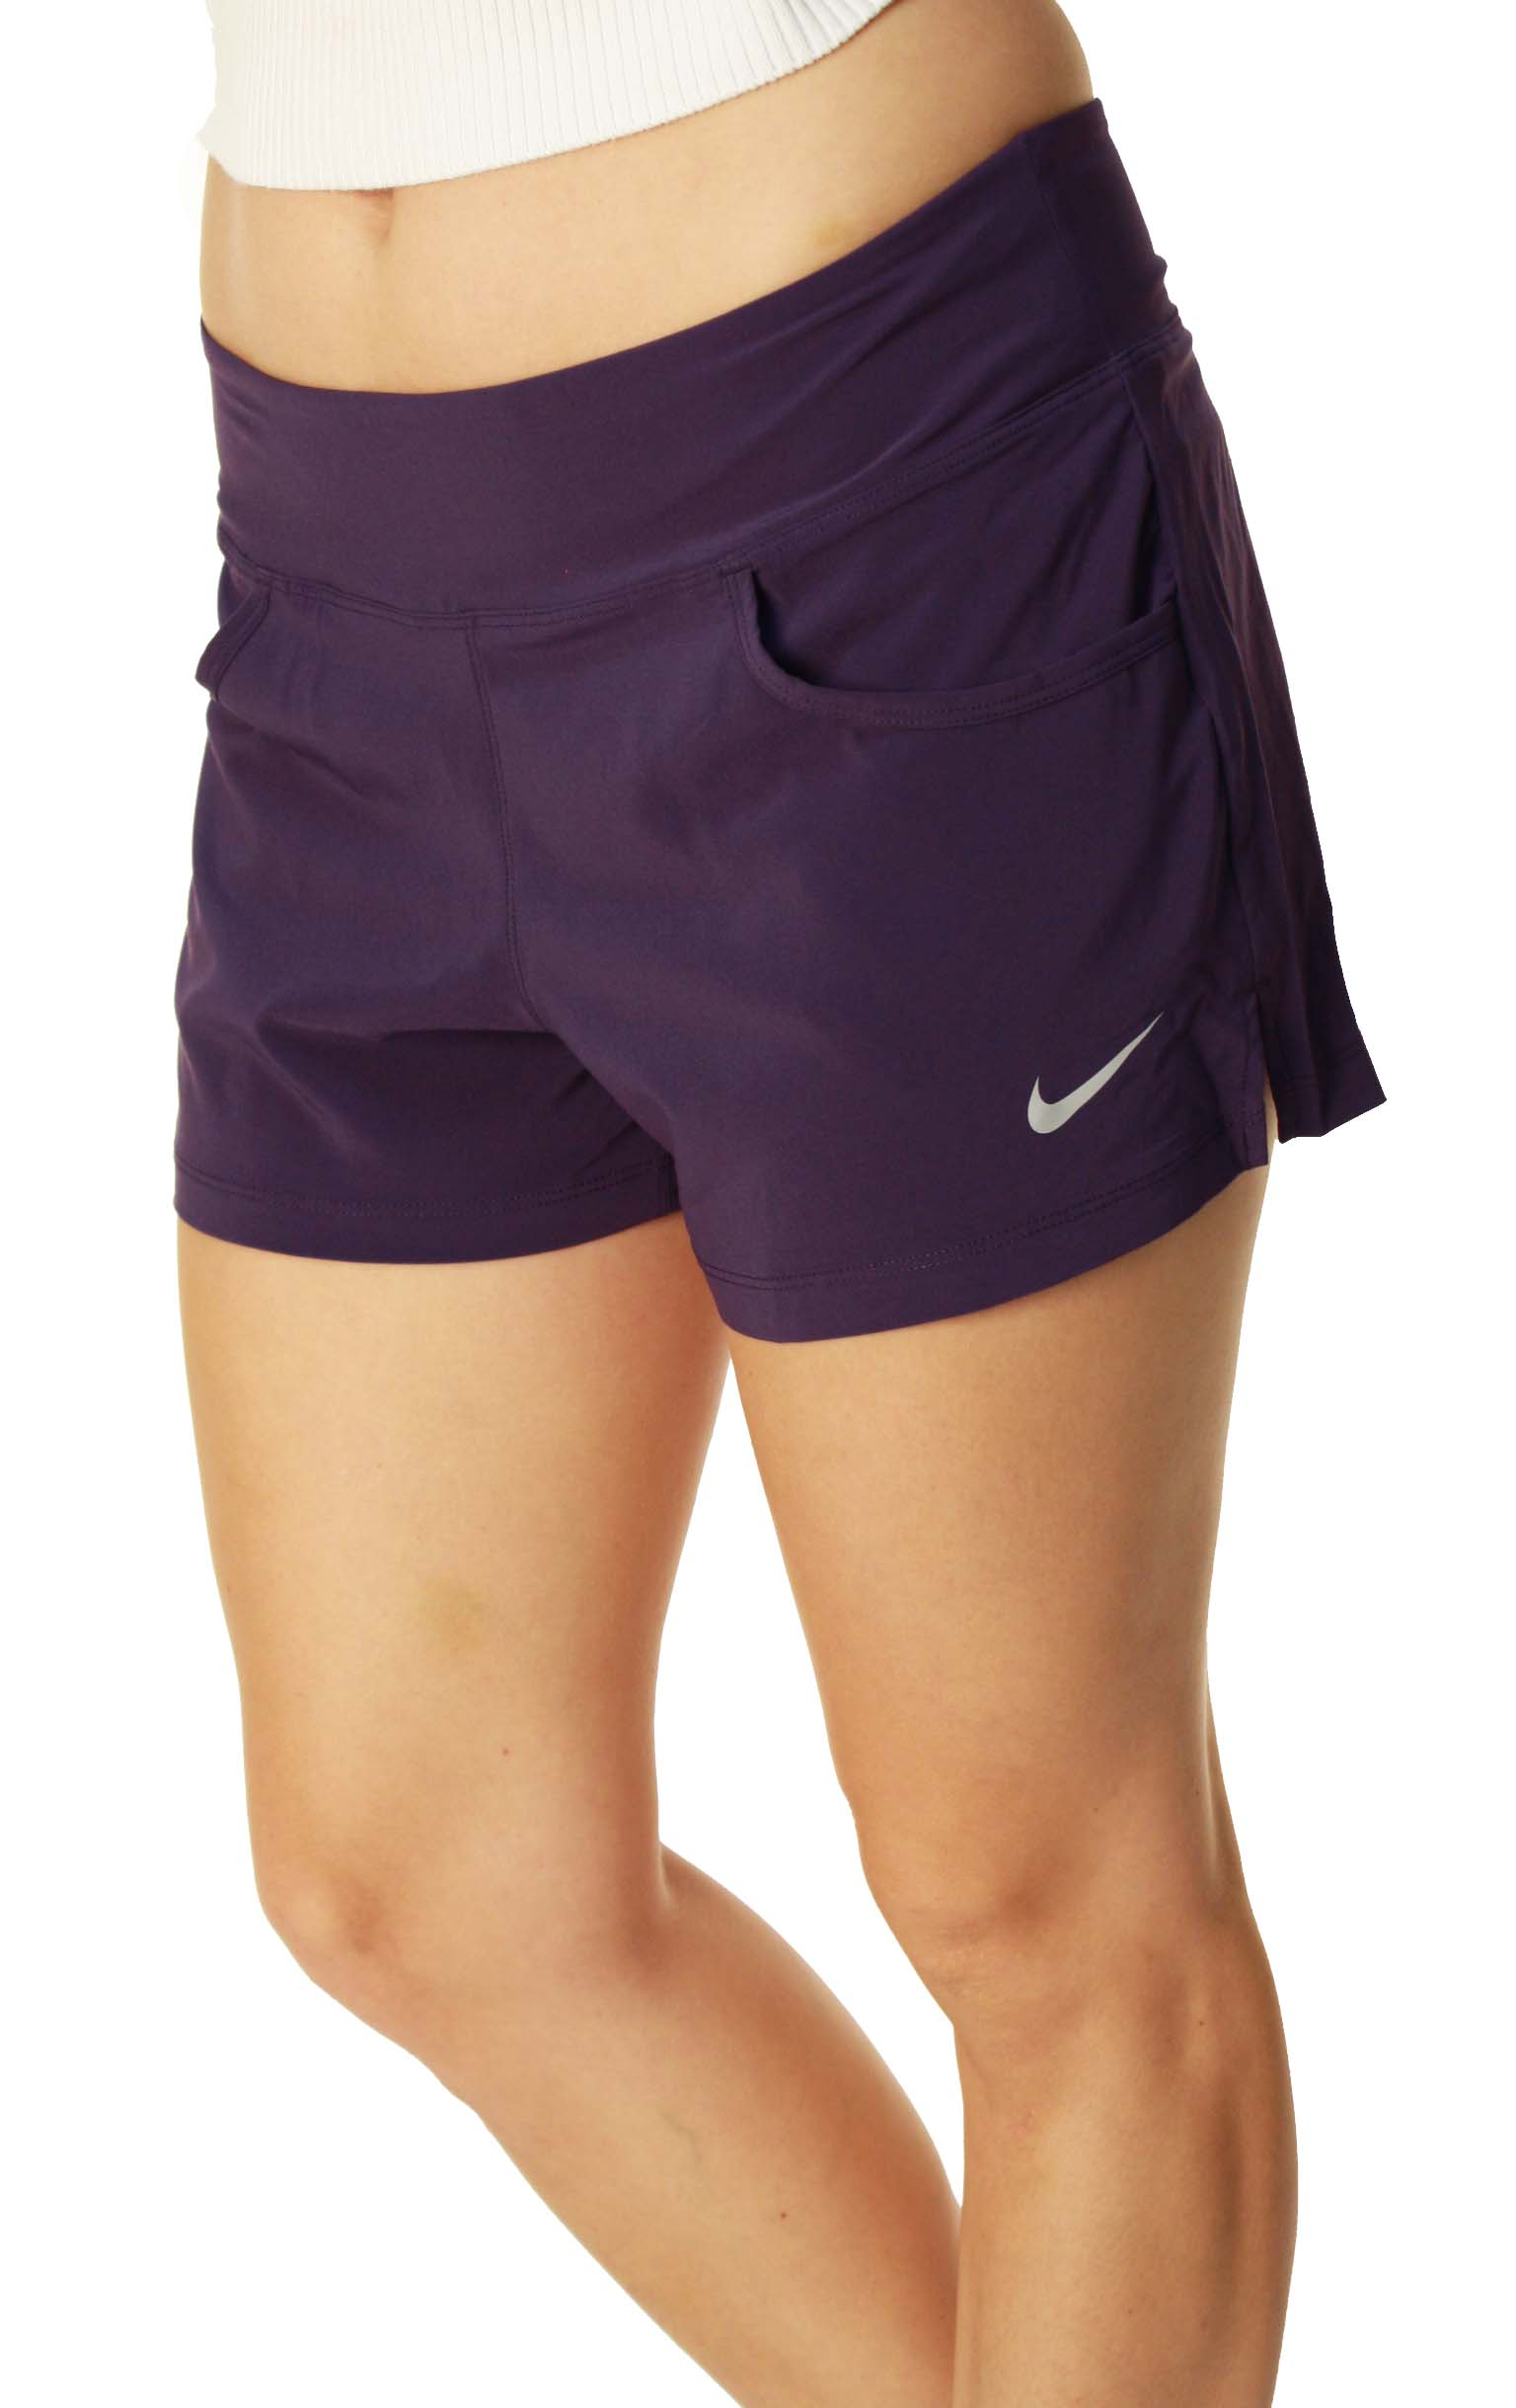 Nike Women's Dri-Fit Stay Cool Tennis Shorts With Under Compression Shorts at Sears.com